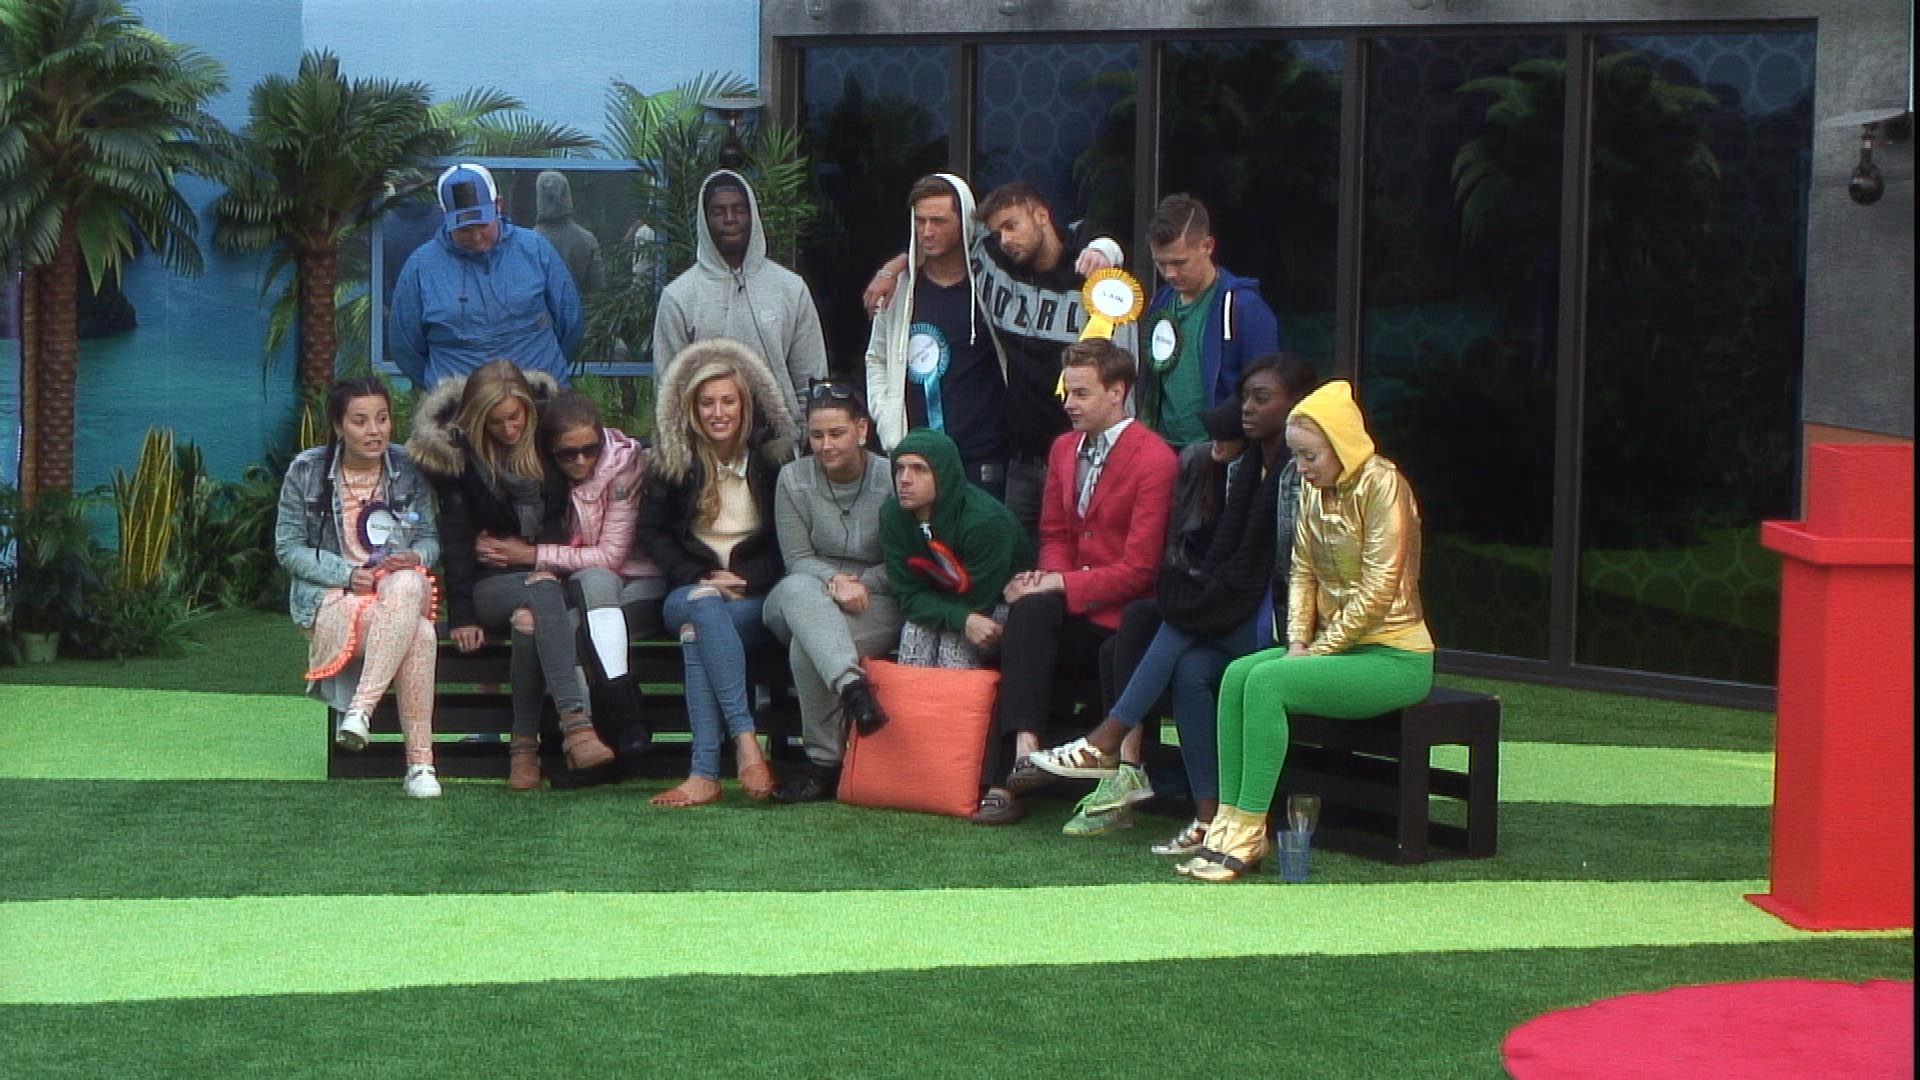 Day 8: Housemates react to outside contact in latest task